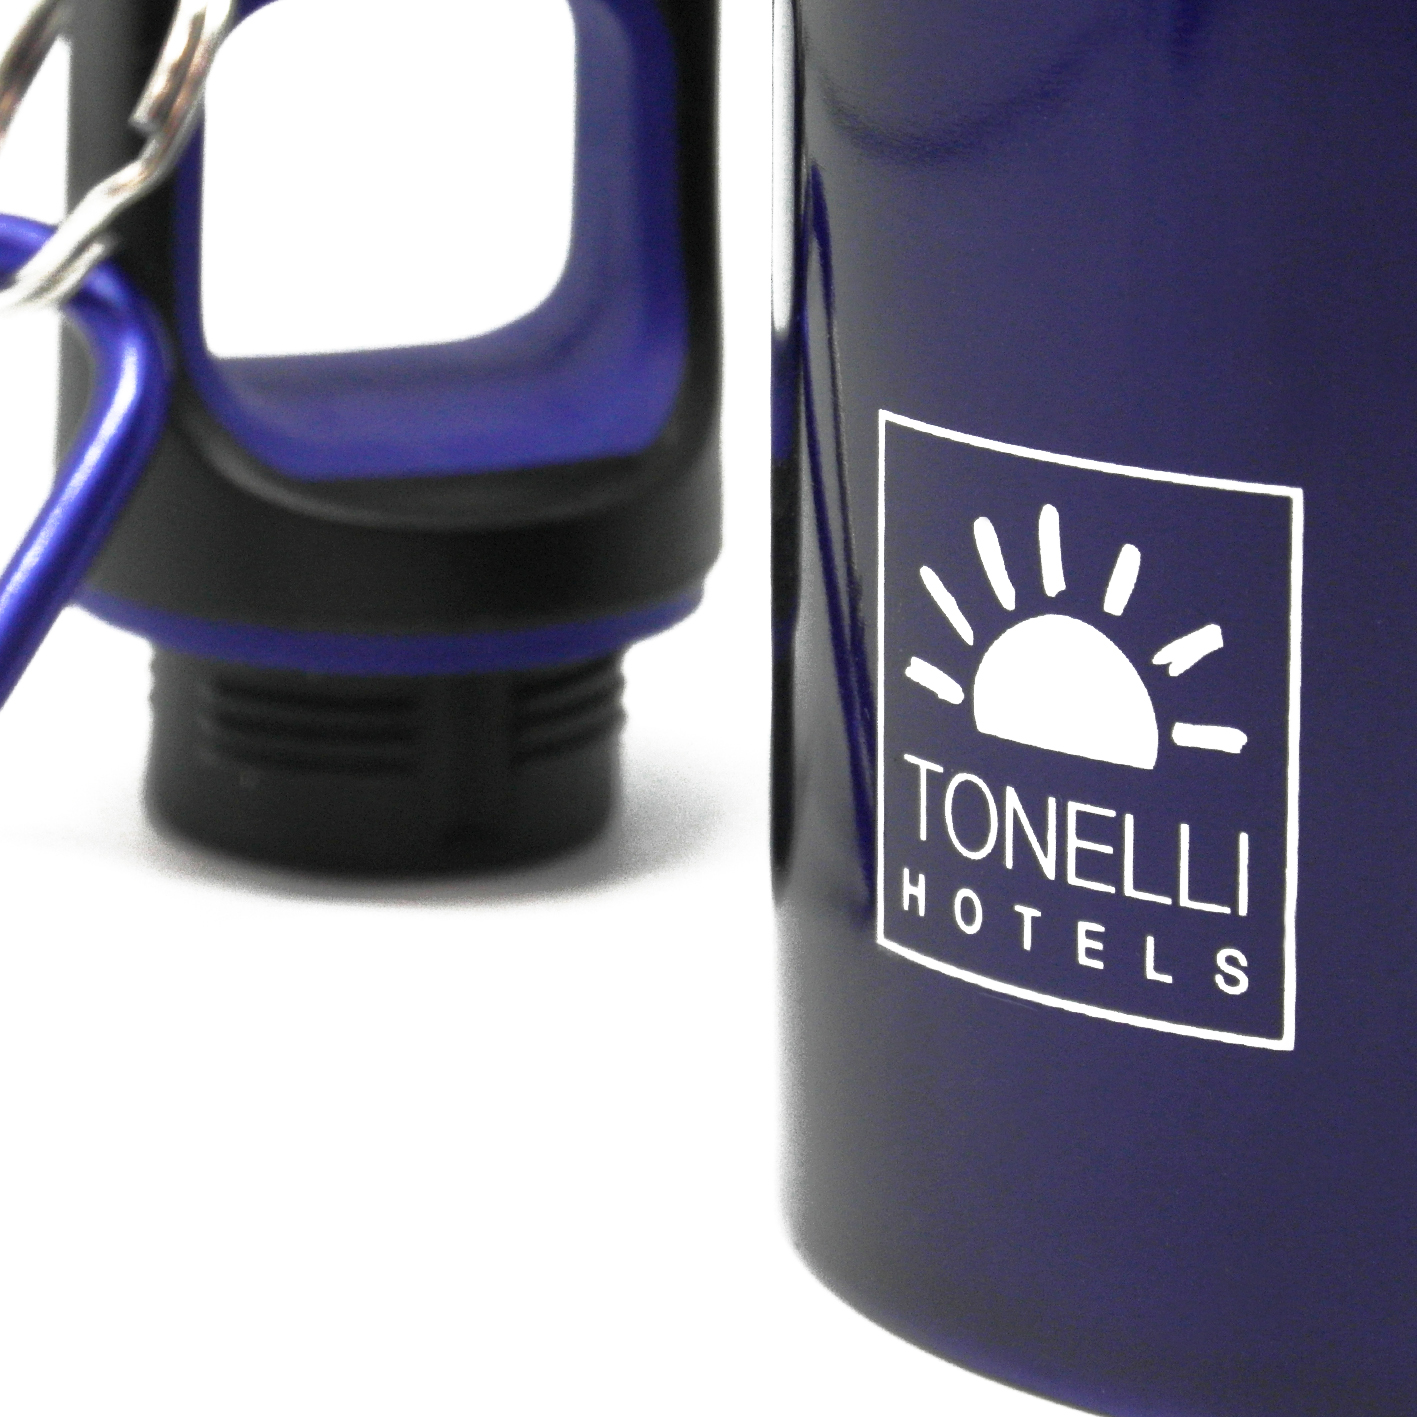 tonelli-hotels-borraccia